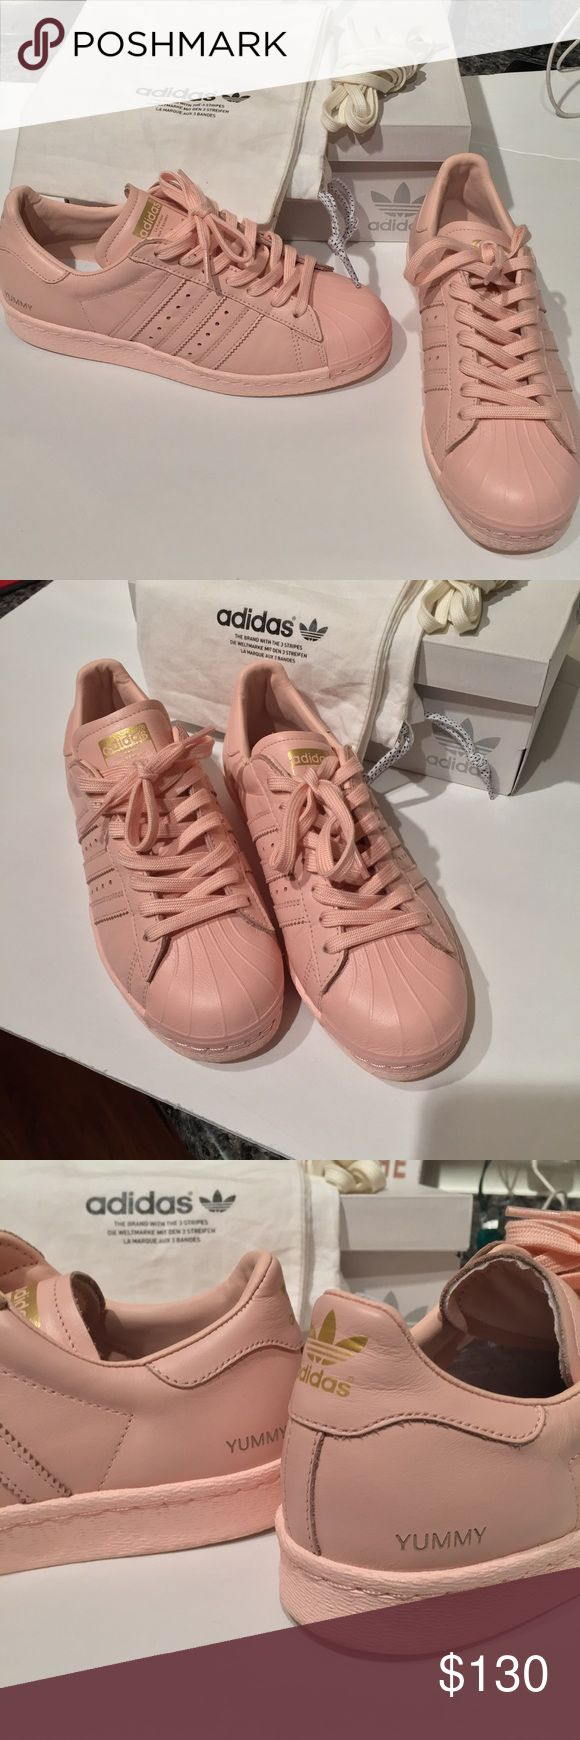 """Pastel pink adidas superstar Pastel pink adidas with gold! """"Yummy"""" on each side. Only Worn once. Includes original box, dust bag and extra laces (cream) there is some creasing on the right shoe :( ❤️️NO TRADES❤️️ Adidas Shoes Sneakers"""